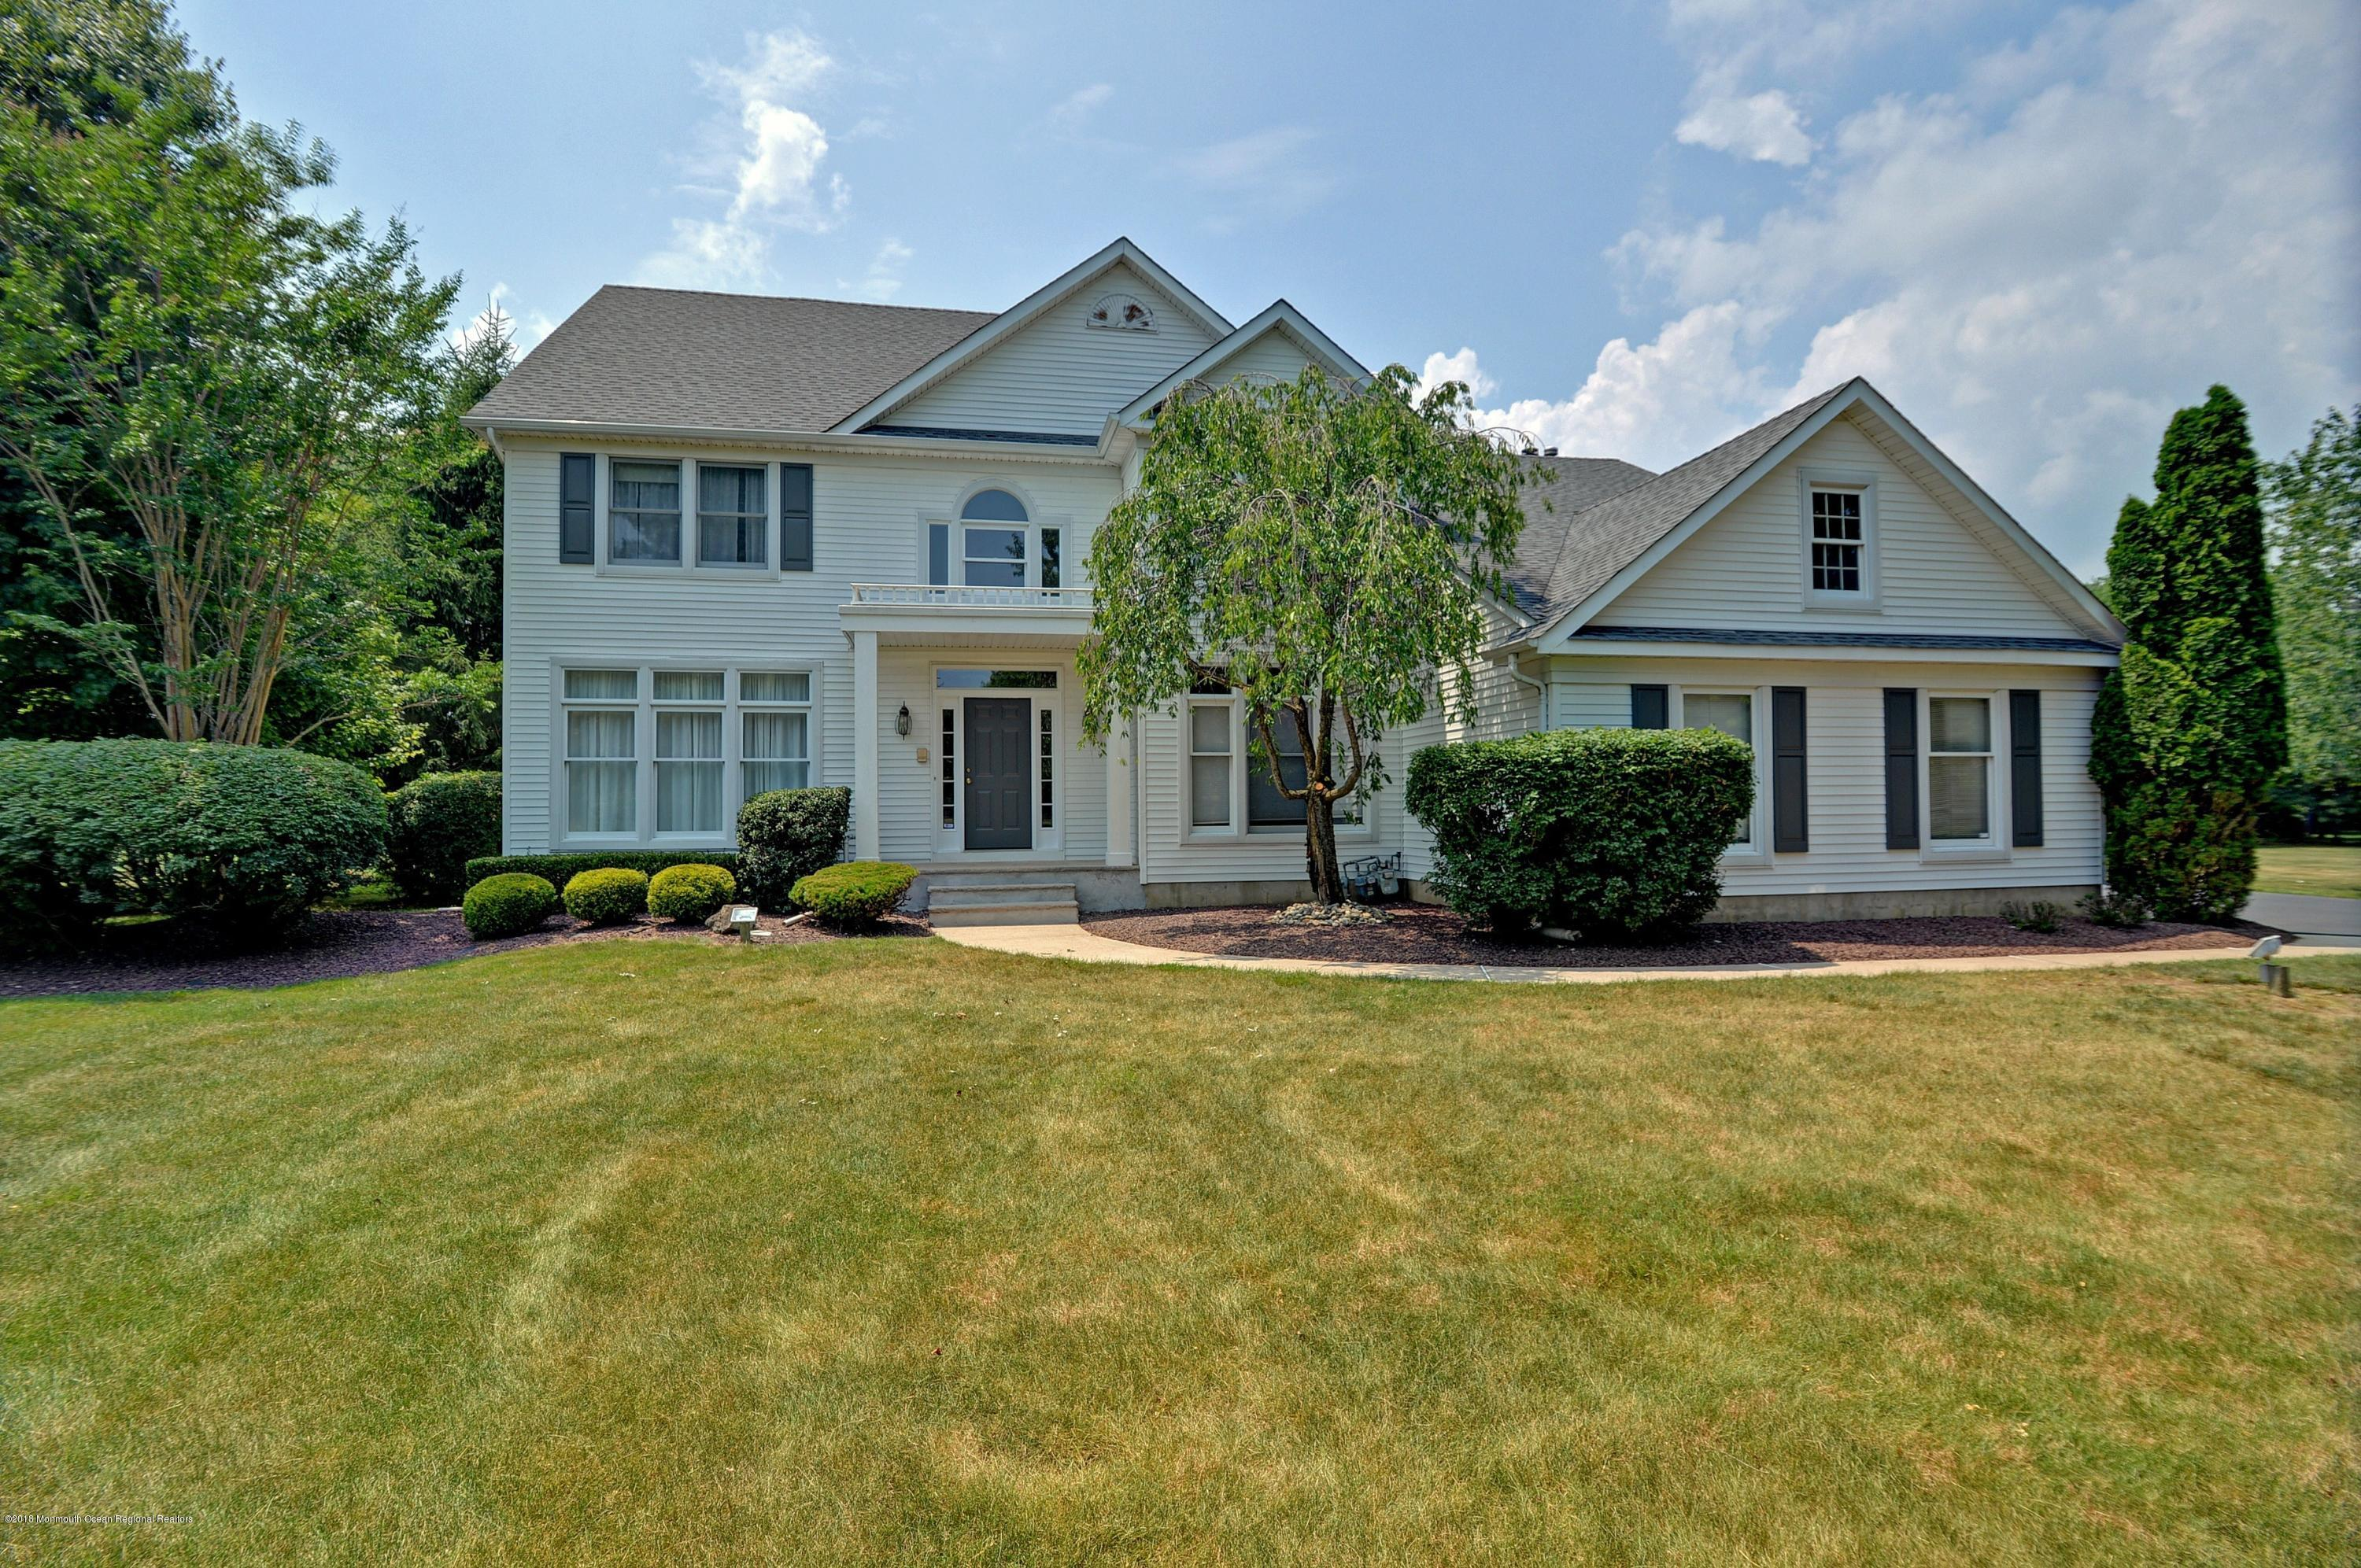 5  Dimisa Drive, Holmdel, New Jersey